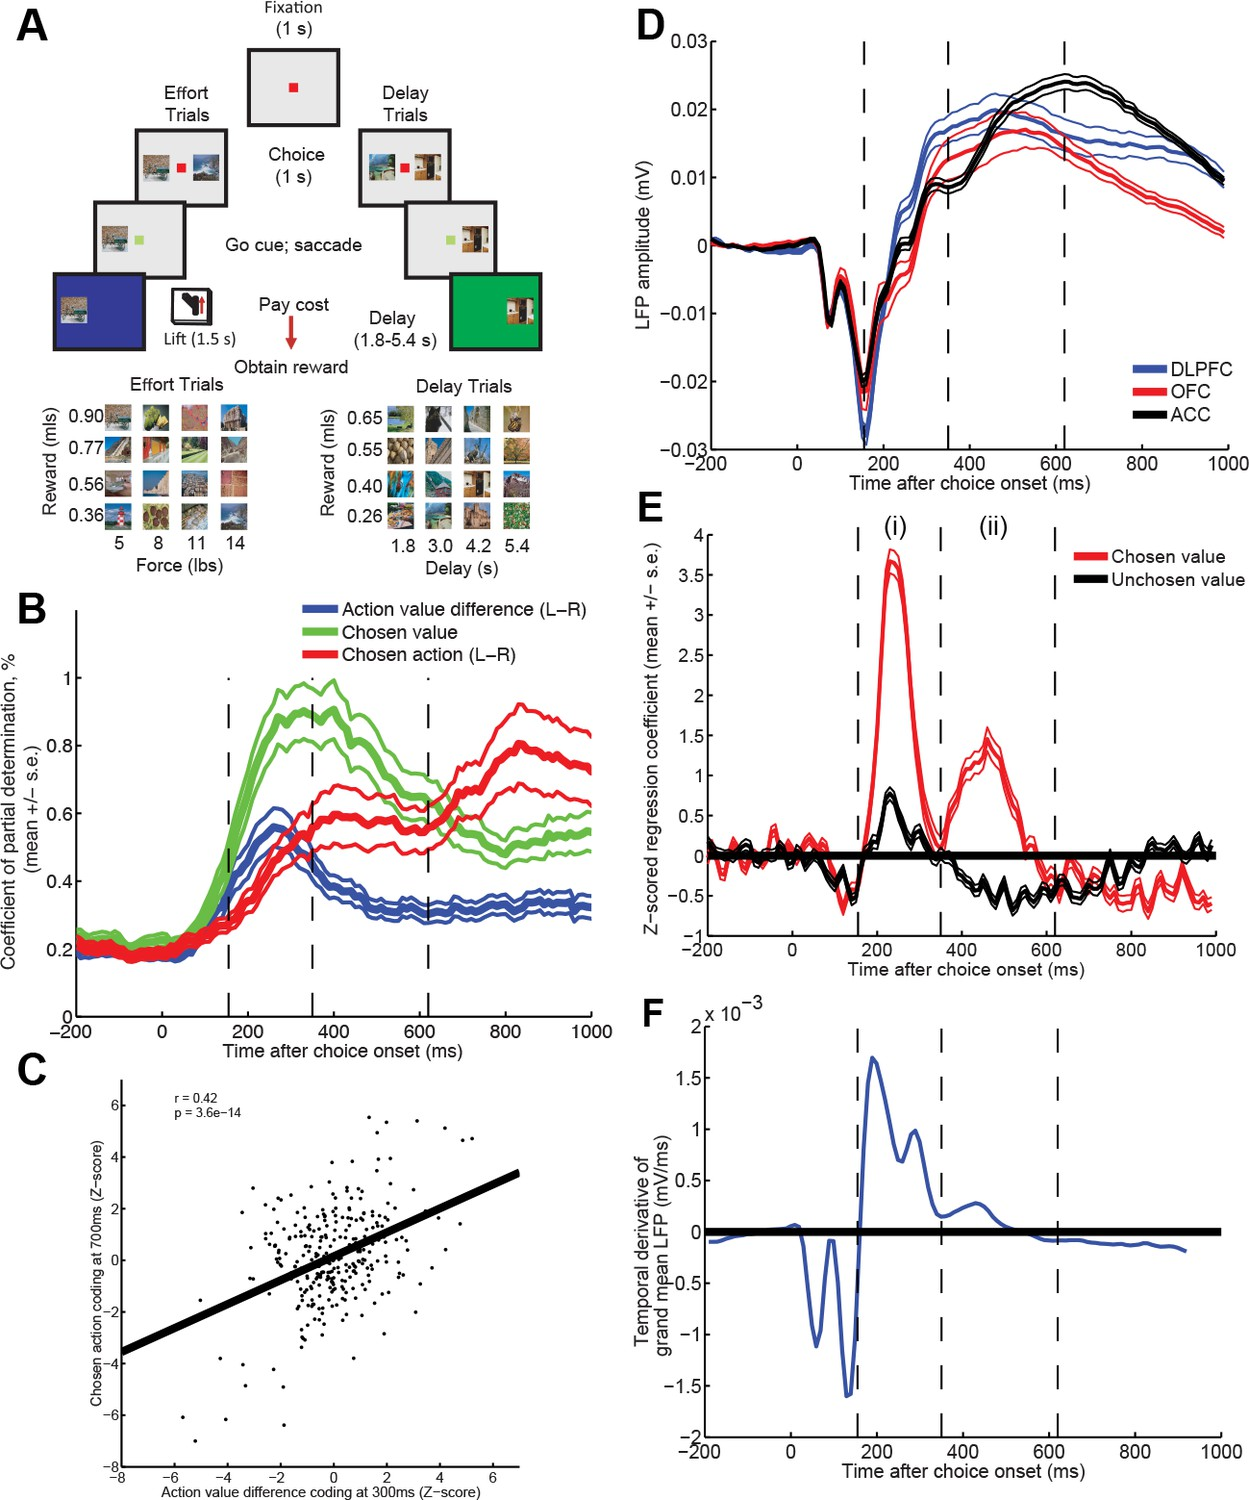 Capturing The Temporal Evolution Of Choice Across Prefrontal Cortex Electric Circuits And Fields Nuffield Foundation Time Varying Value Correlates In Single Units Lfp During